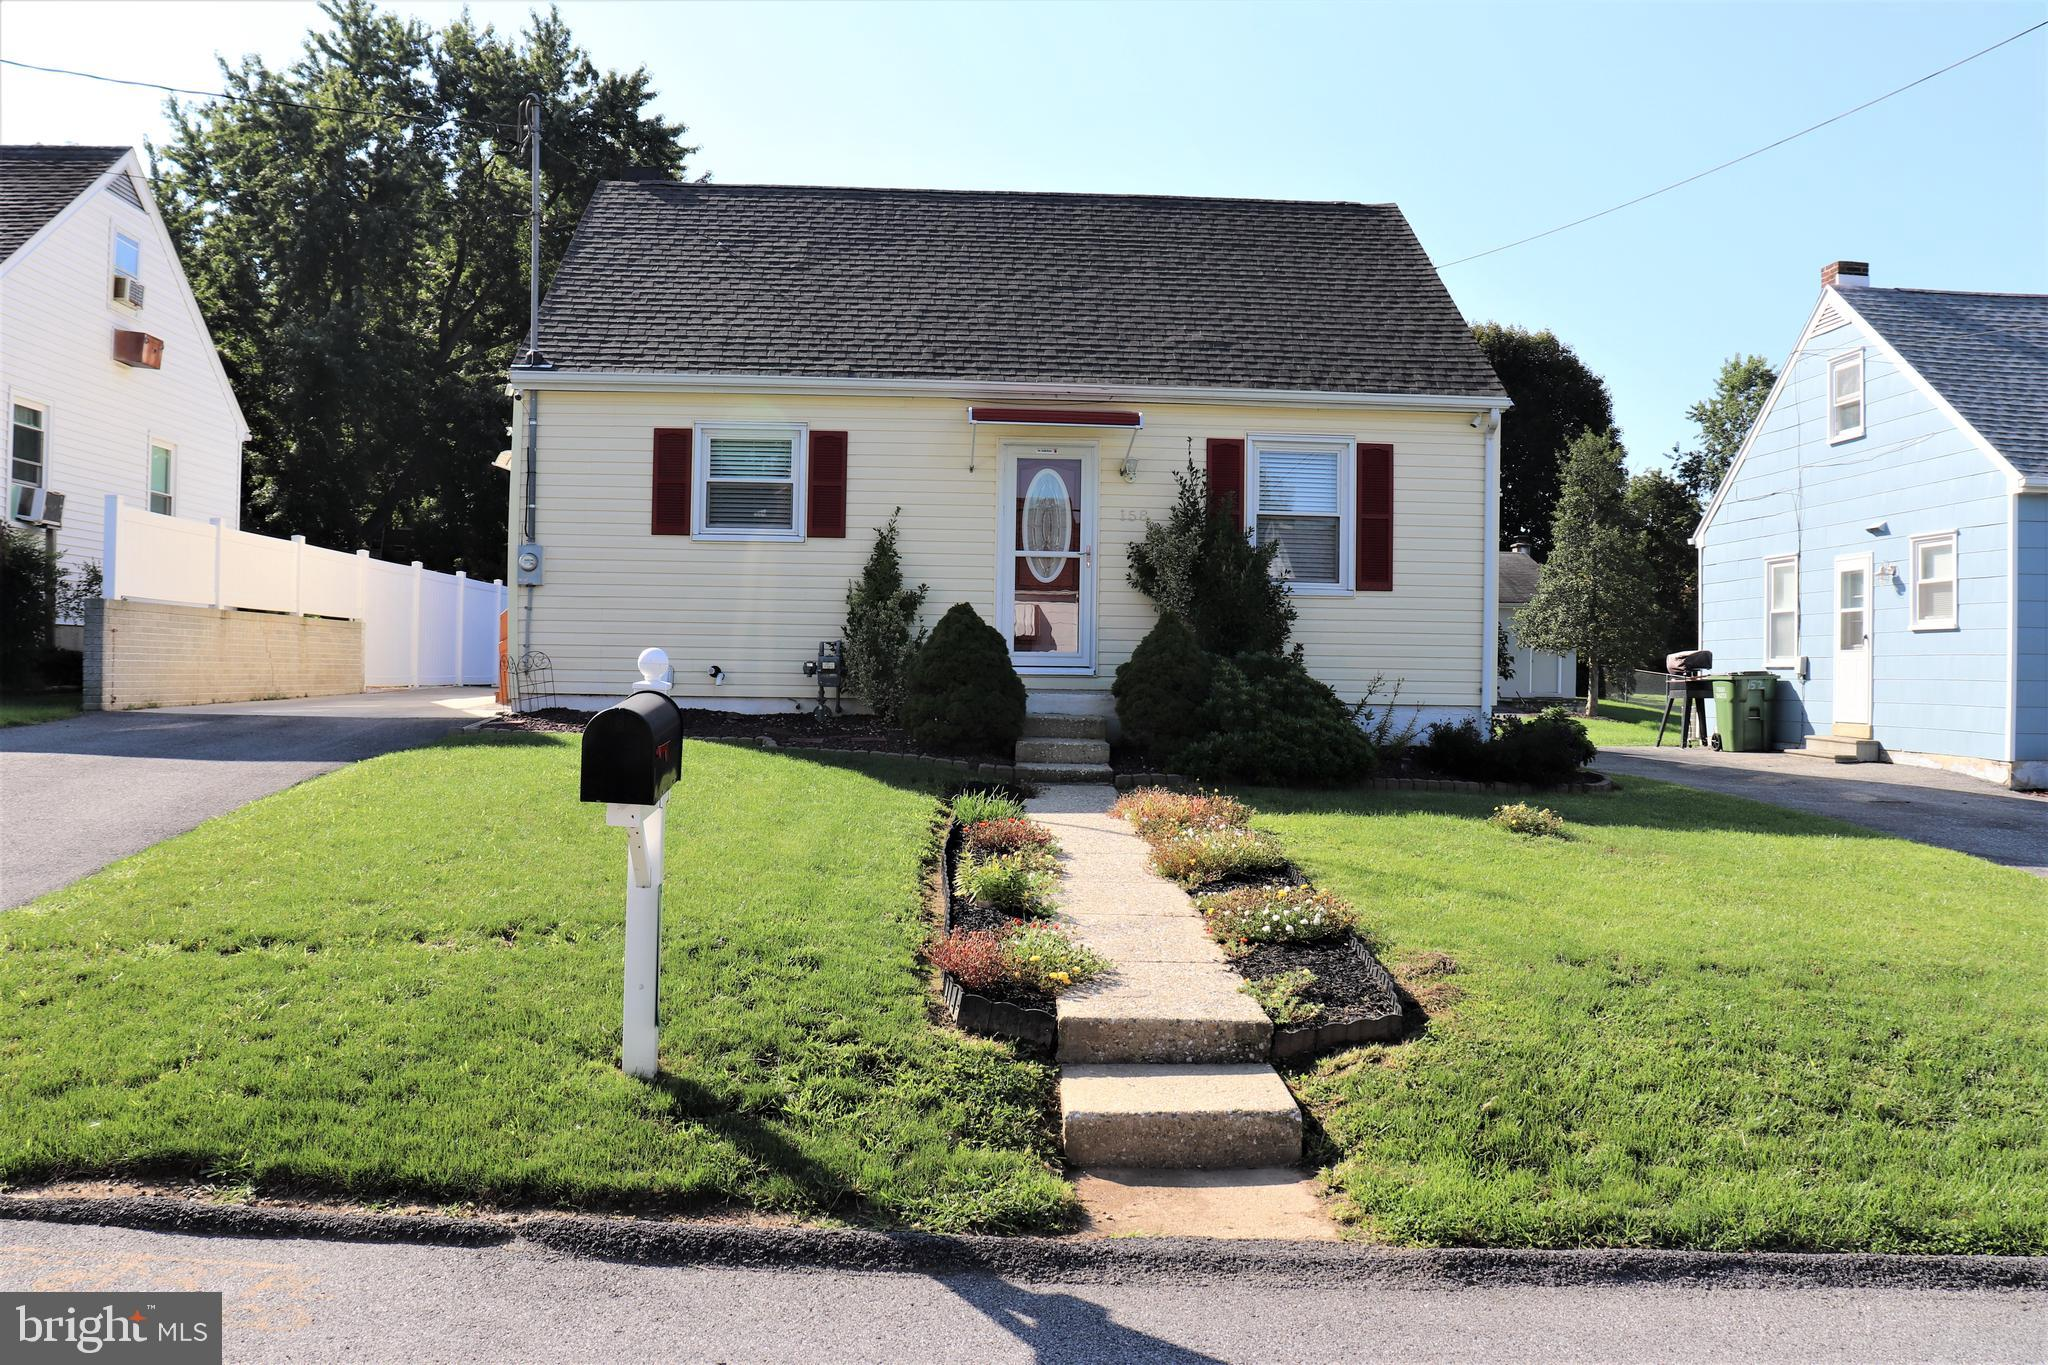 Looking for a charming home that was kept in meticulous condition? Look no further than 158 Eastland Dr! New Roof August 2021,Heating system and hot water heater installed in 2015. The home also features a 28 x 32 Pole Barn built in 2019- The barn has a separate 100 AMP electrical panel and is insulated with an Rfactor of 120- Behind the pole barn in a nicely fenced in yard. Upon opening the side door of the home ,you can  go through the door to the kitchen and enter the first floor or you  can proceed down the stairs to the basement where you will find it fully finished with 4 finished rooms plus a full bathroom. New carpet was just installed. In the kitchen you will find a kitchen with nice white cabinetry -all appliances convey The living room and dining area boast gleaming woods floors and plenty of light . Off the dining area, you can proceed out the french doors on to the fully screened in porch complete with lights and ceiling fans.  The first floor bathroom has been nicely updated. There is also a bedroom on this level and also a larger bedroom on the upper floor. Please see the attached sheet of all the improvements. The sellers have made use of every area in this sweet home!